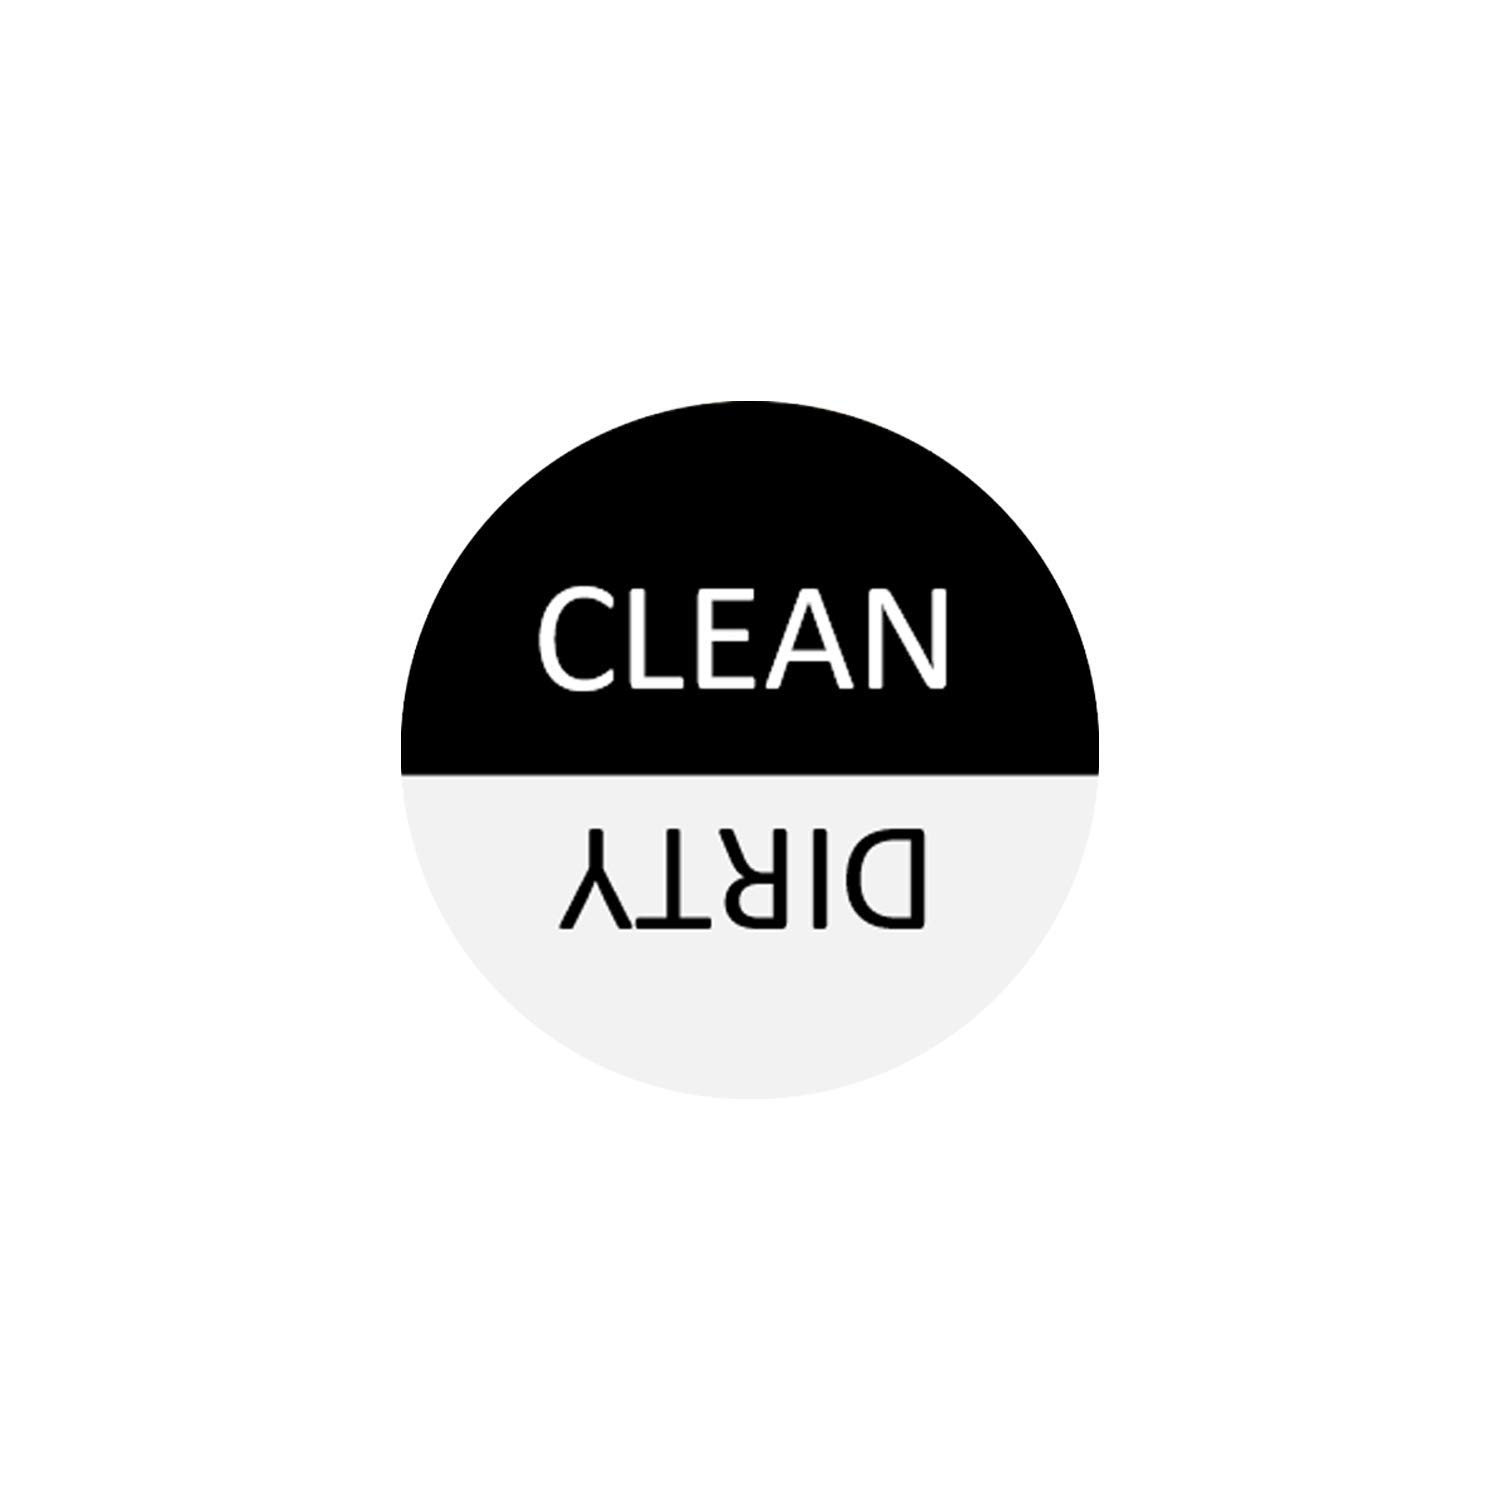 Dishwasher Magnet Clean Dirty Sign - 3 Inch Round Black & White Refrigerator Magnets - Funny Housewarming Gifts by Flexible Magnets